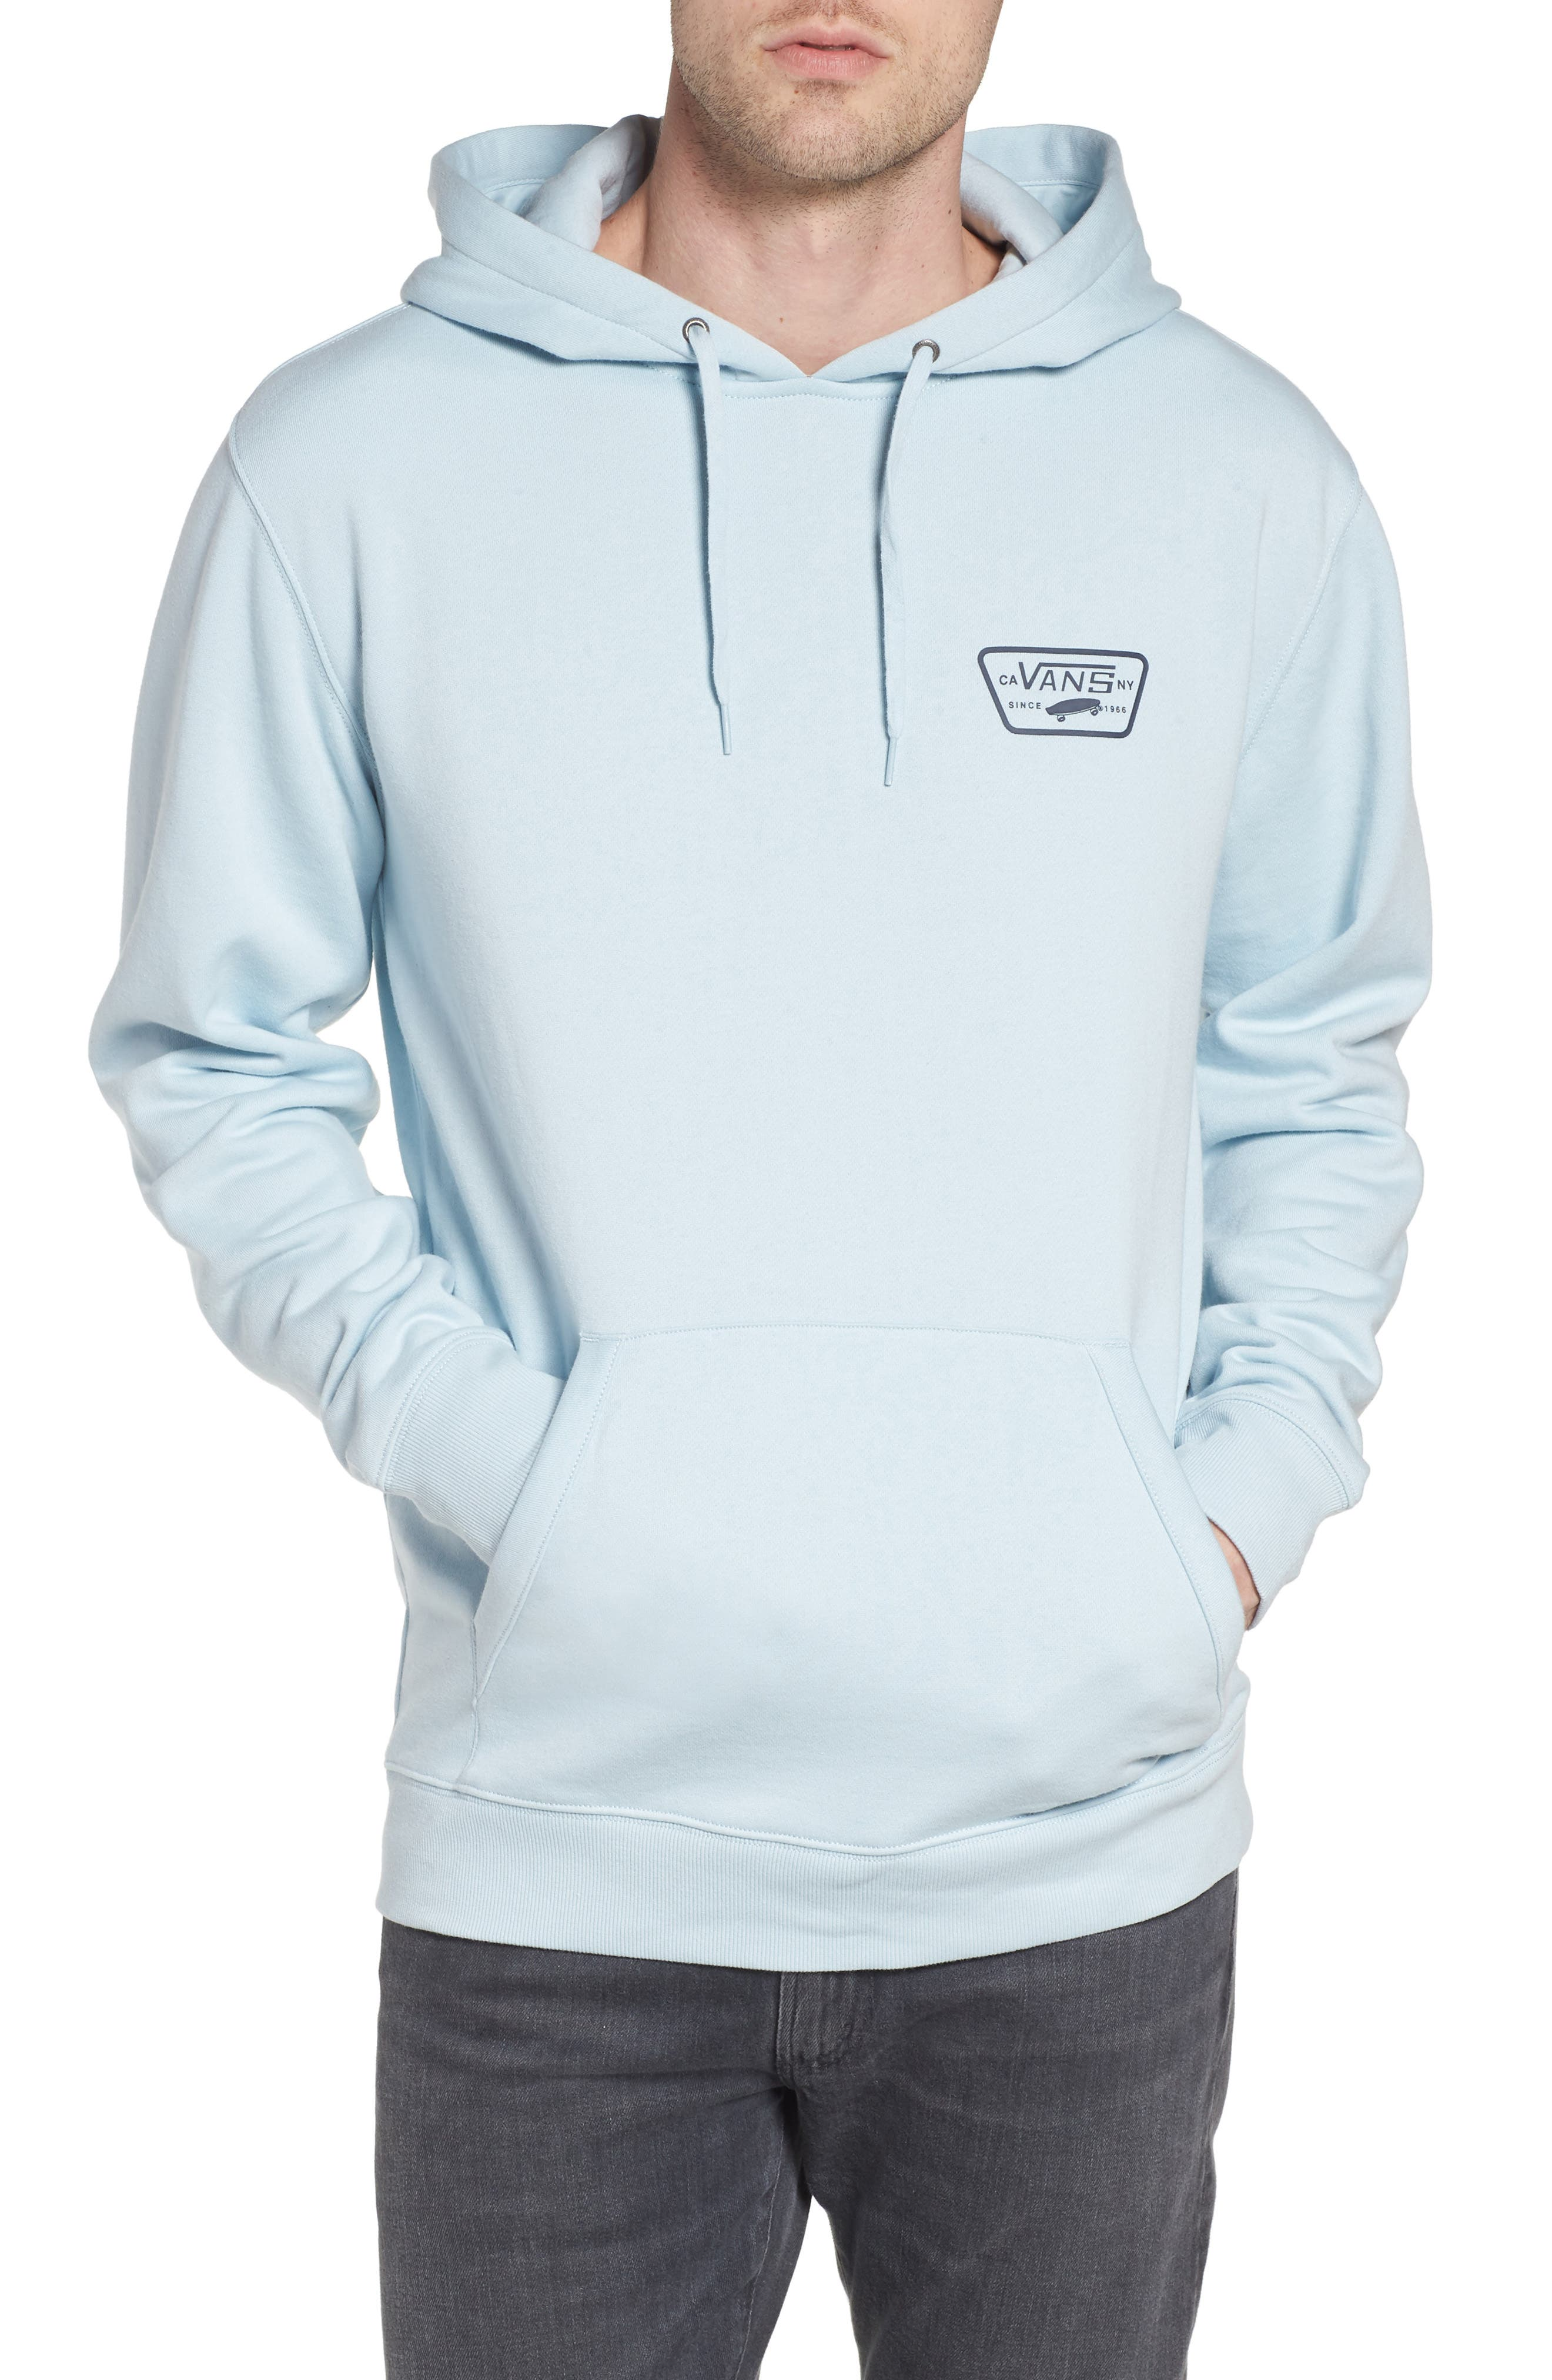 Full Patched Hoodie Sweatshirt,                             Main thumbnail 1, color,                             Baby Blue